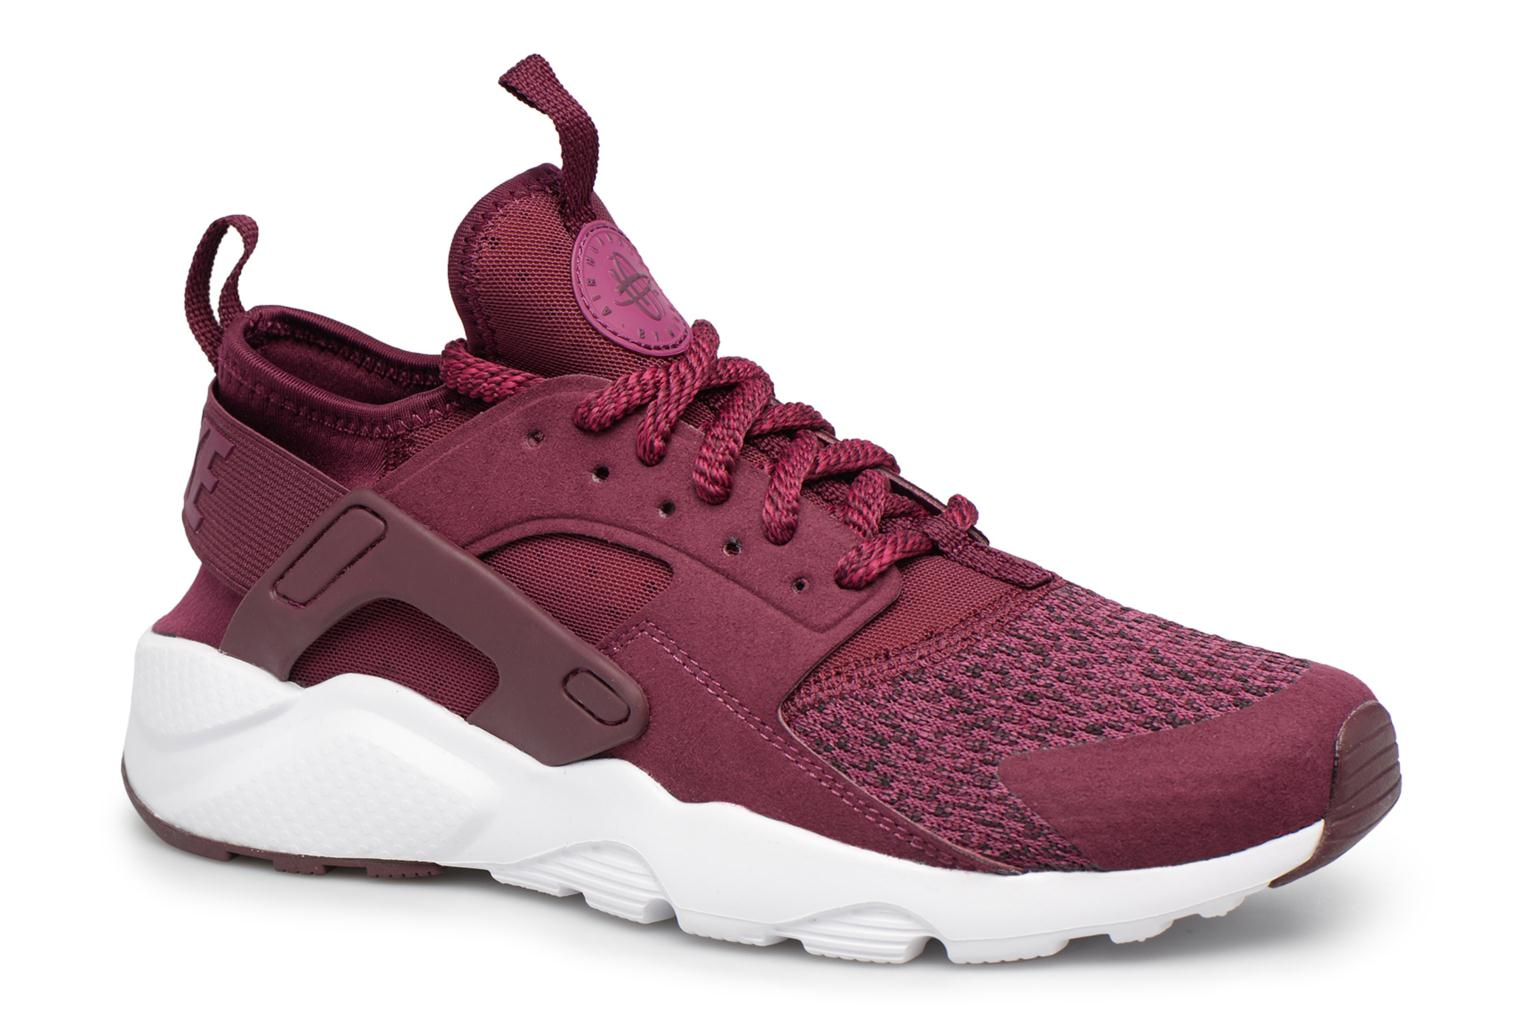 f05f25260ee2 ... coupon code for baskets nike air huarache run ultra se gs bordeaux vue  détail paire d81e1